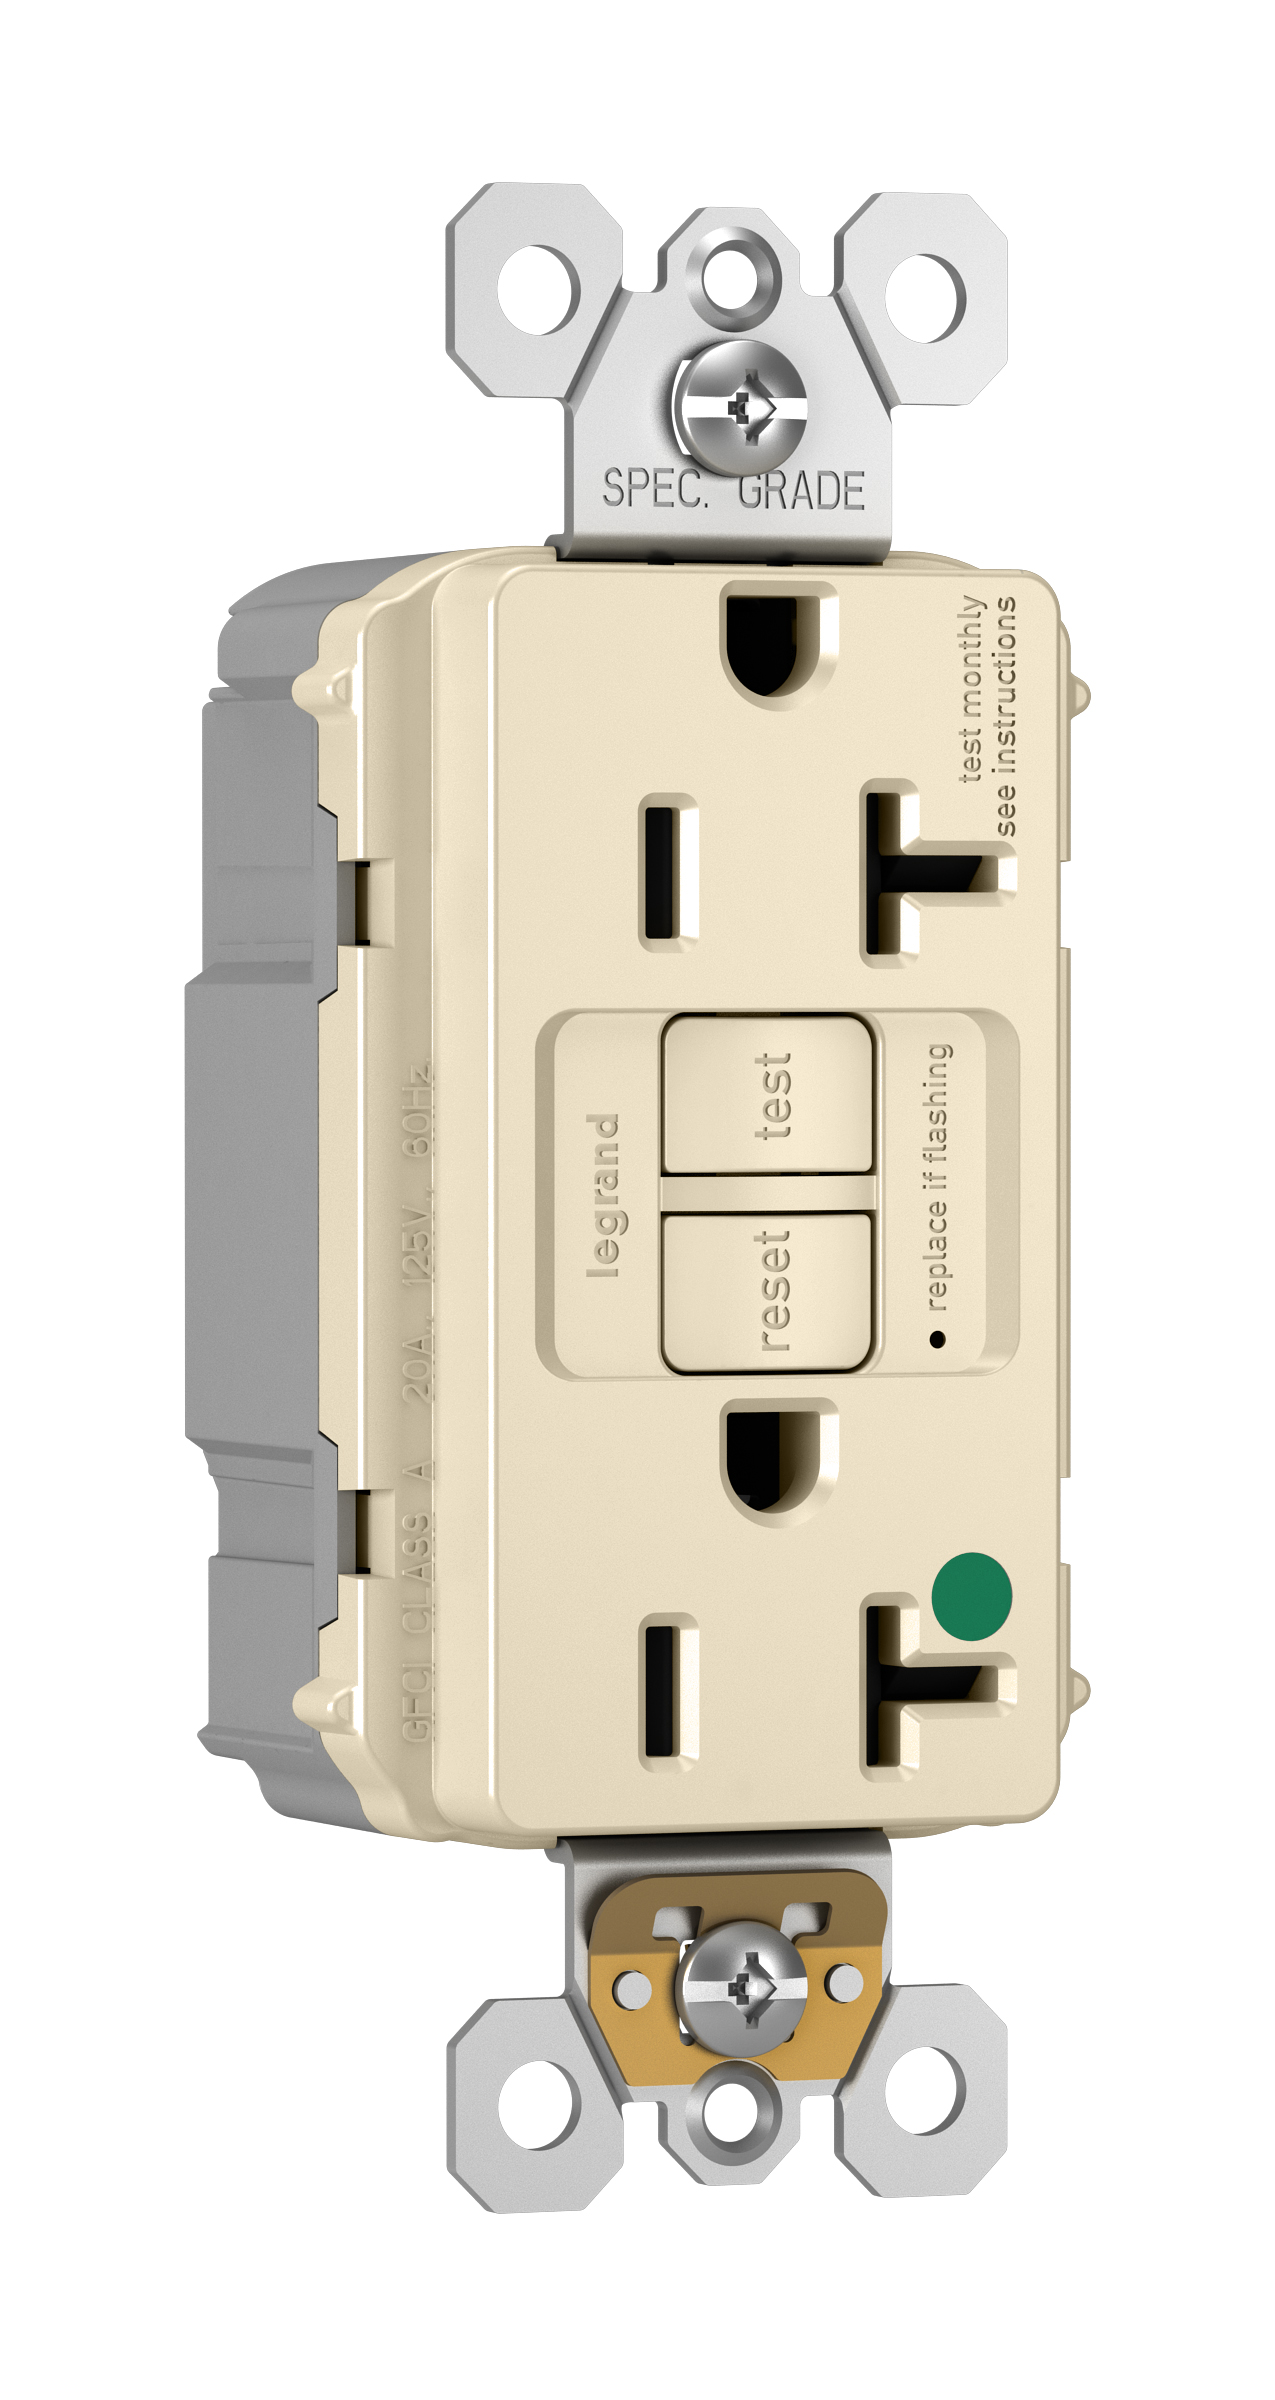 Pass Seymour Pt2097 Hgla Revere Electric Wiring Gfci Receptacles Self Test Receptacle 125 Vac 20 A 2 Poles 3 Wires Light Almond